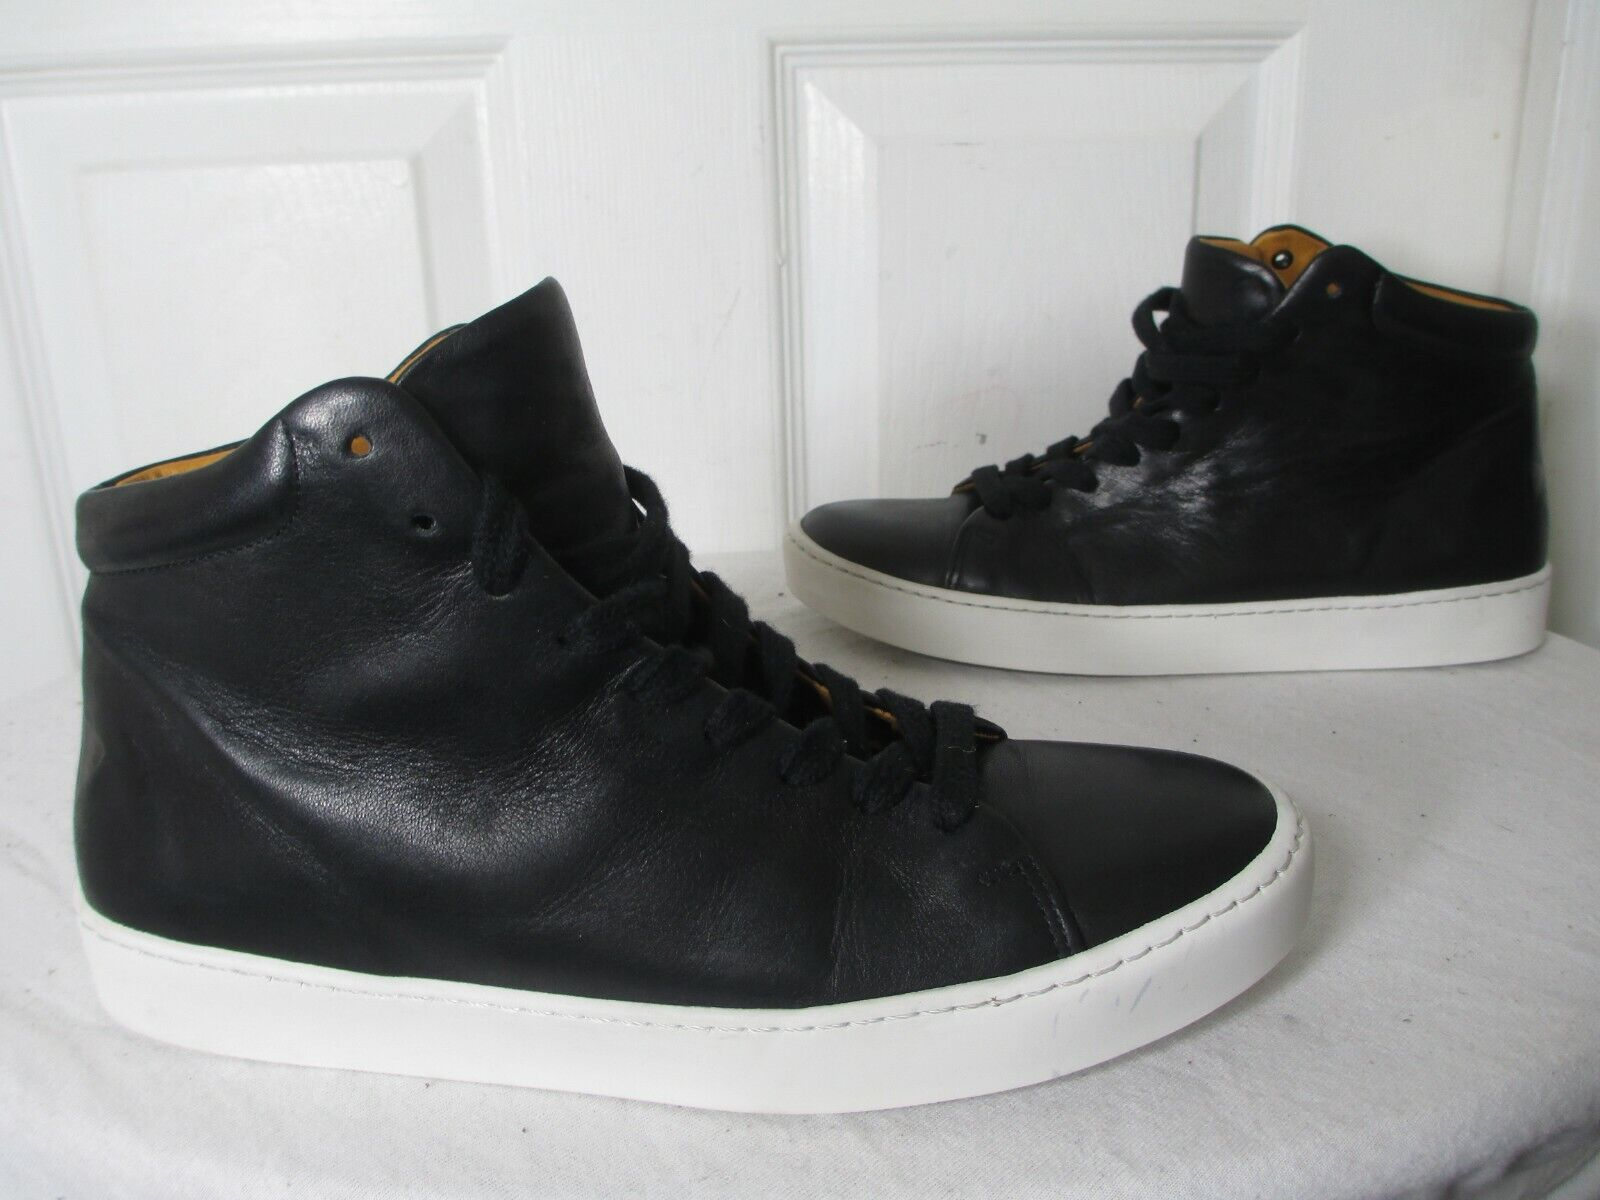 JAK ROYAL HIGH BLACK LEATHER WOMEN'S SNEAKERS EU 38 US 7½ MADE IN PORTUGAL  220